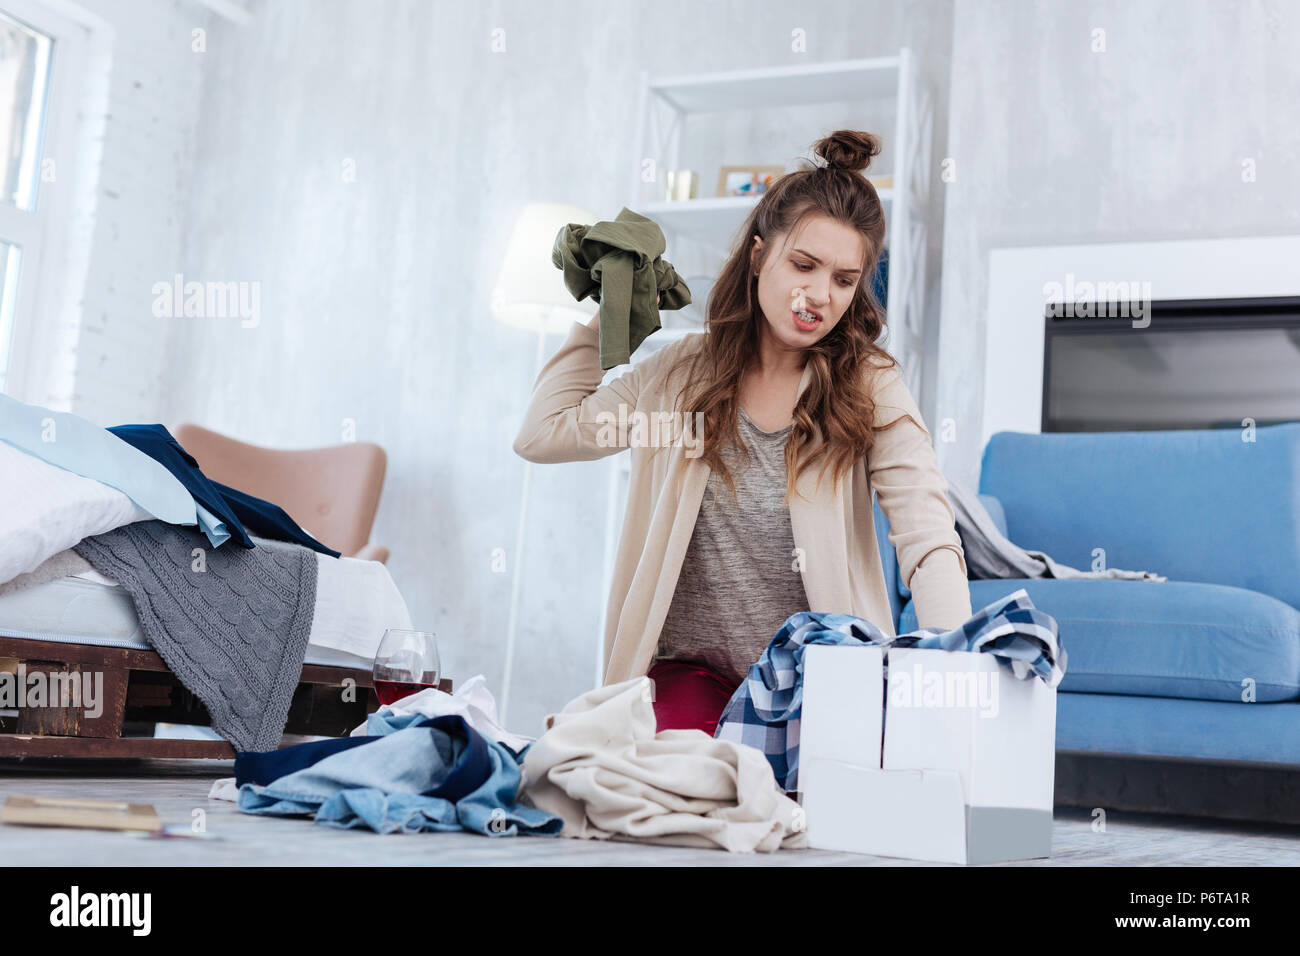 Emotional woman feeling hysterical after divorce - Stock Image